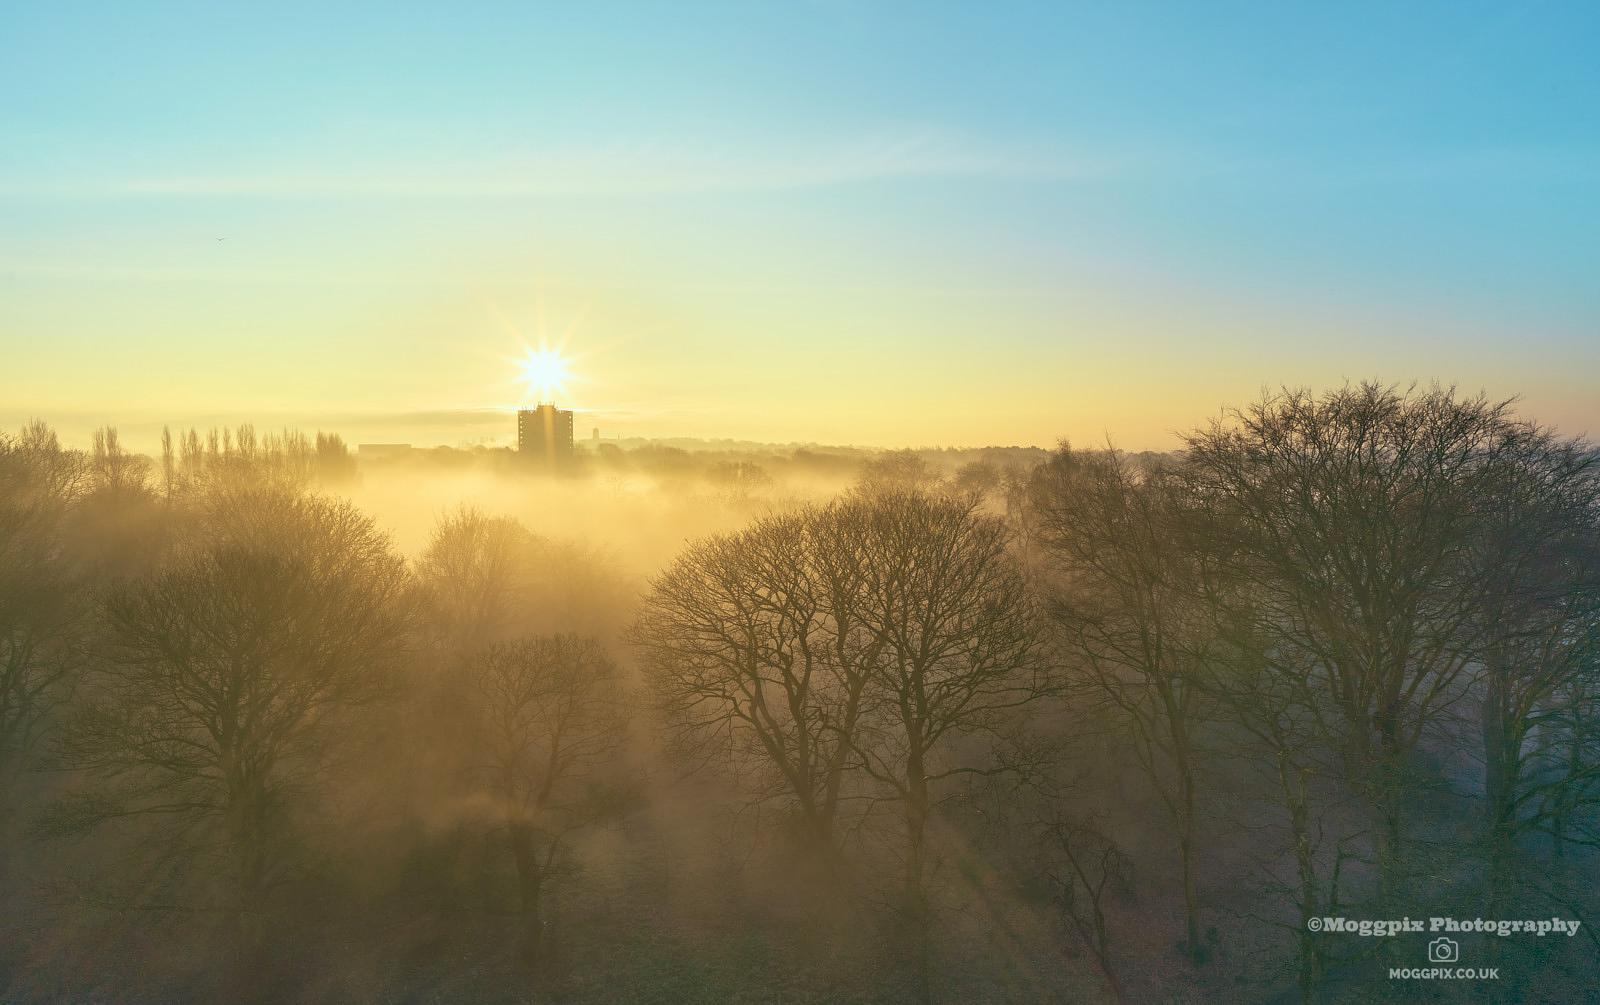 Misty Sunsrise over Sefton Park